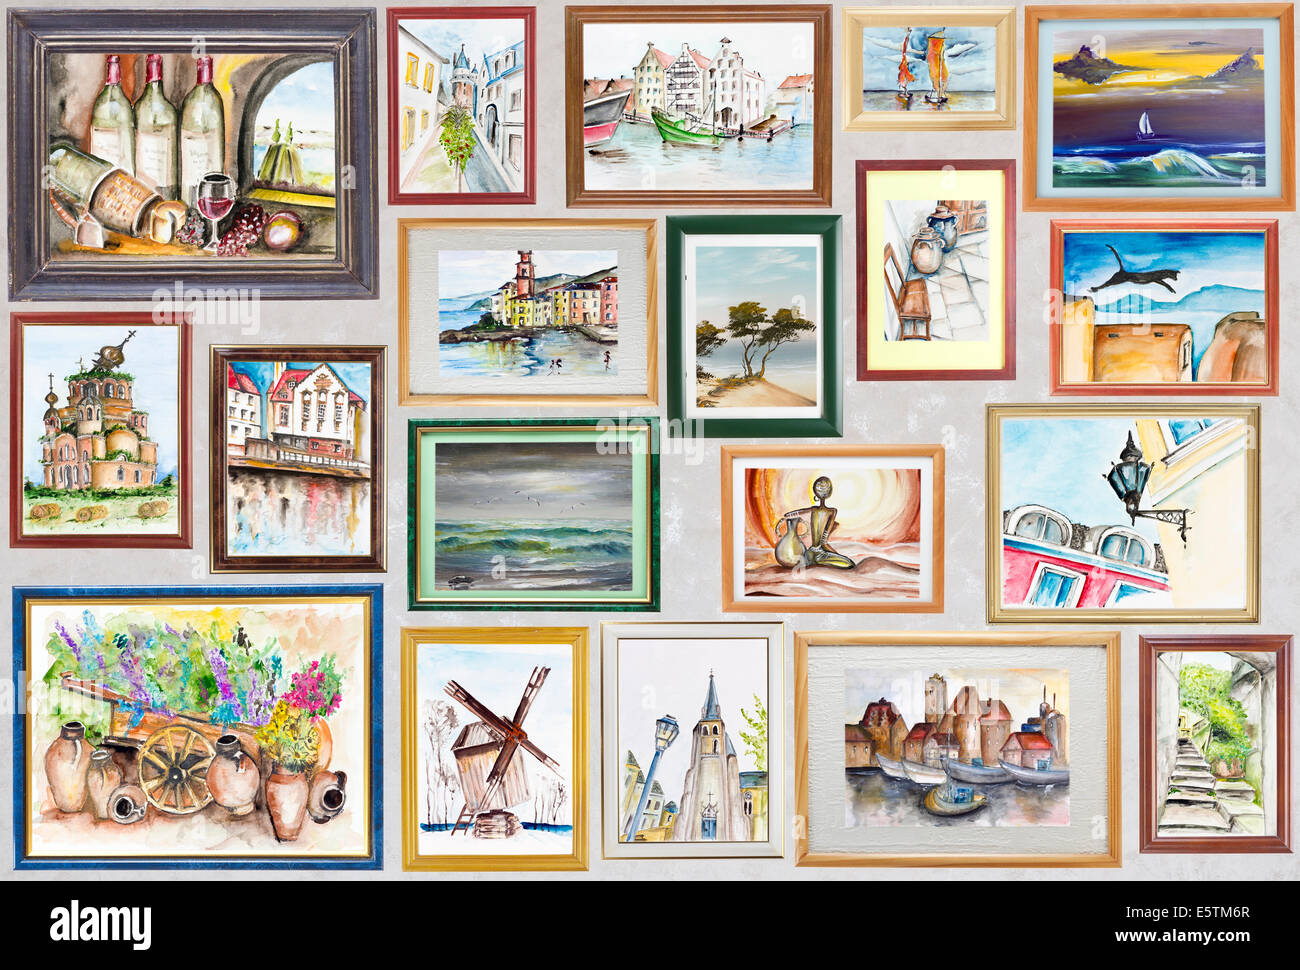 History of watercolor art - History Of My Travel In Watercolor Arts Concept Wooden Frames With Pictures Hang On A Wall With Works Patches